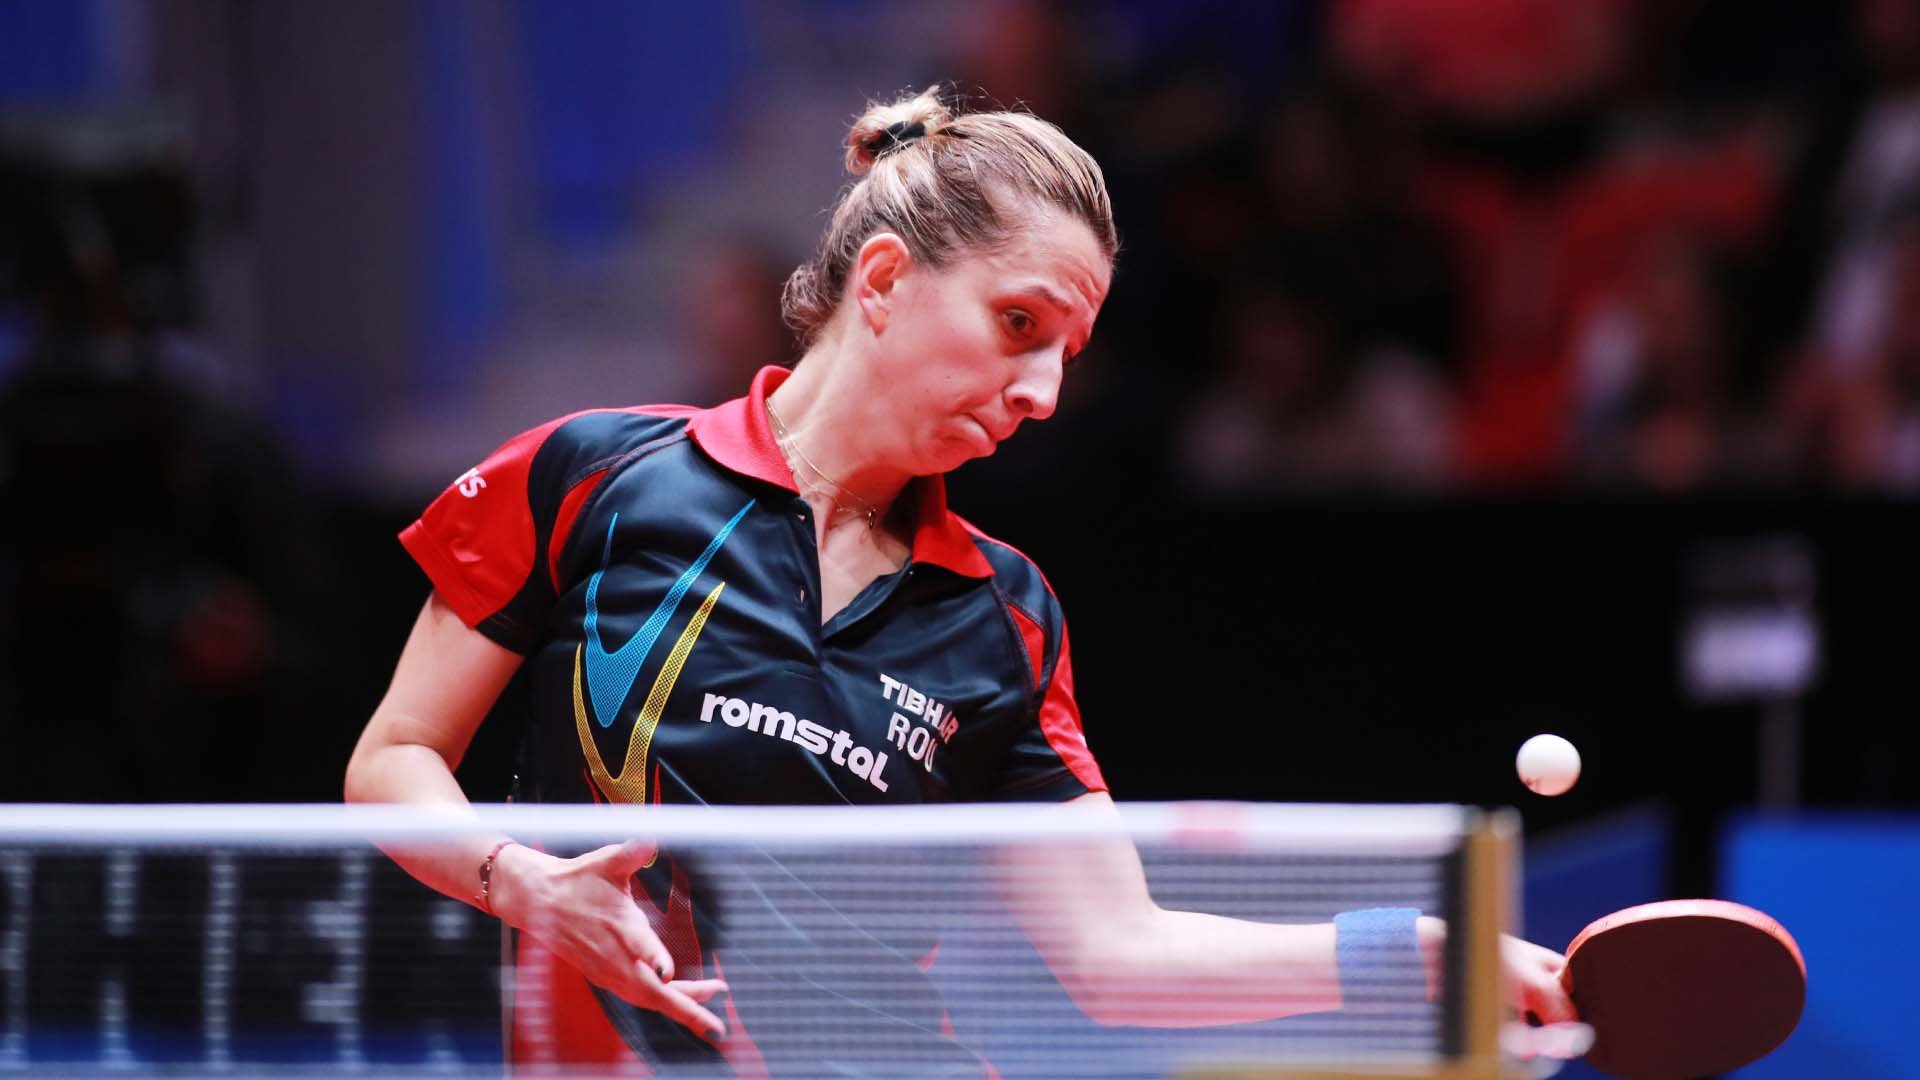 Pesotska stuns third seed Samara at European Table Tennis Championships